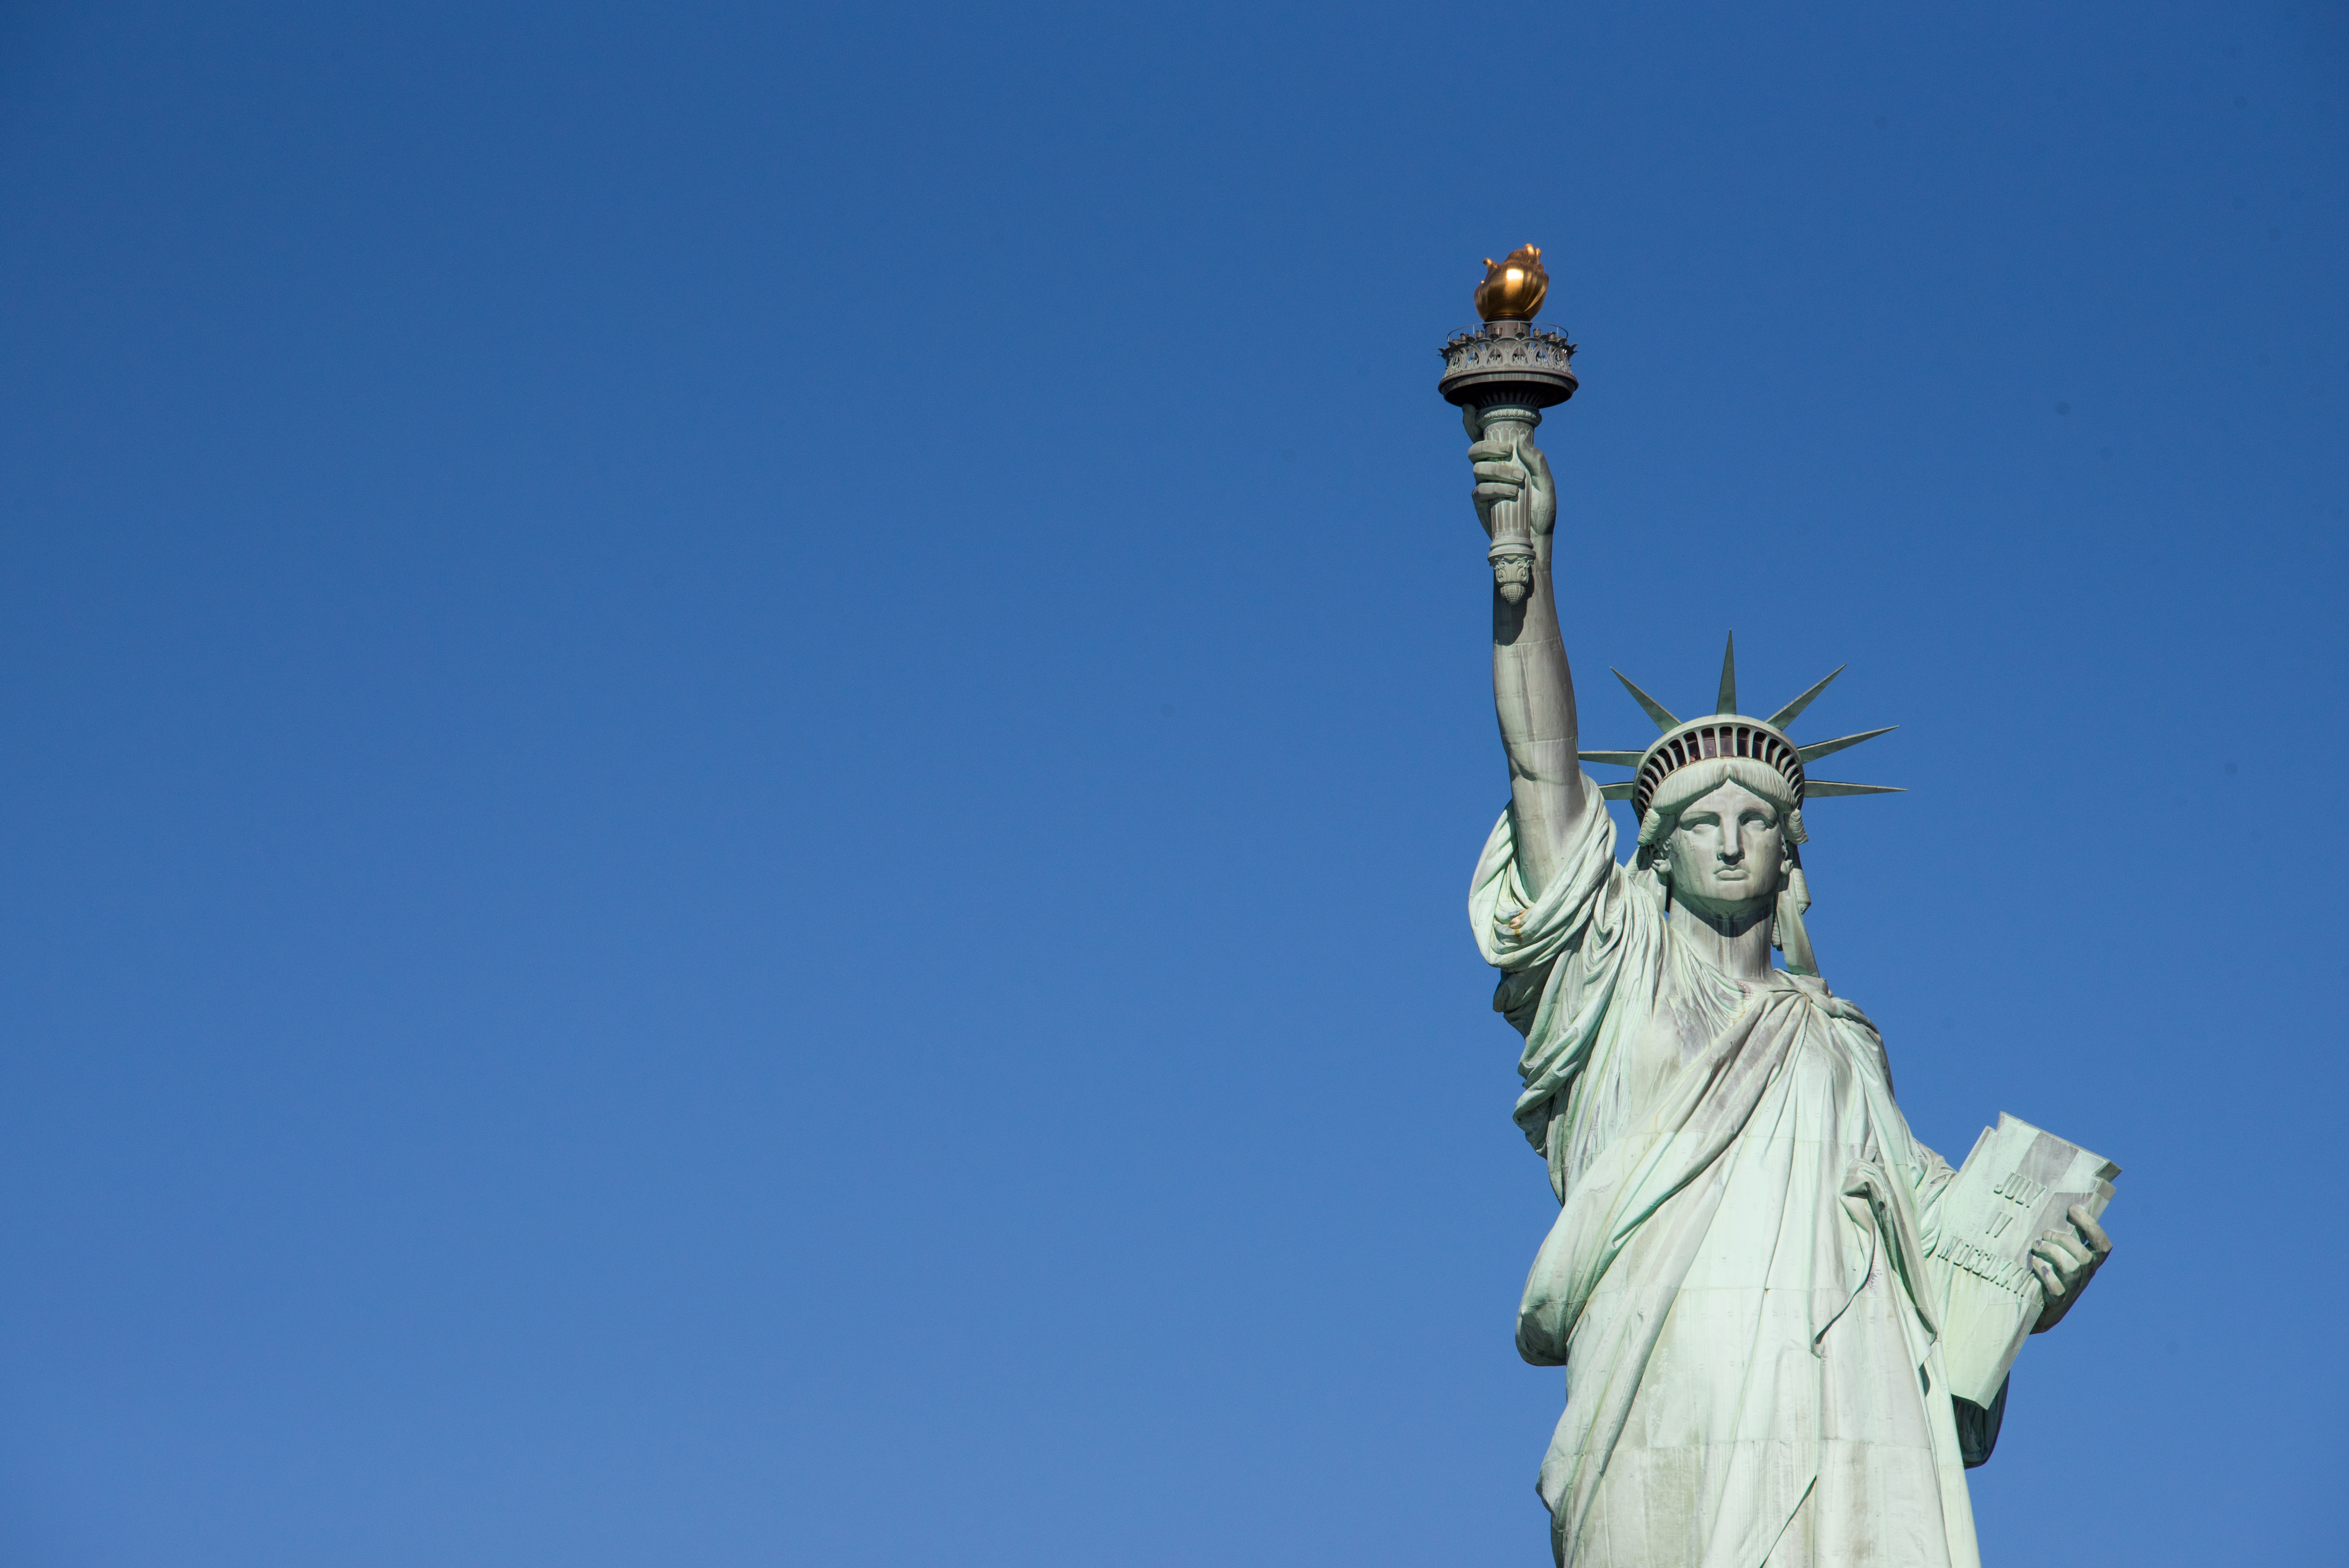 Statue of Liberty or Green Lady, one of the most important